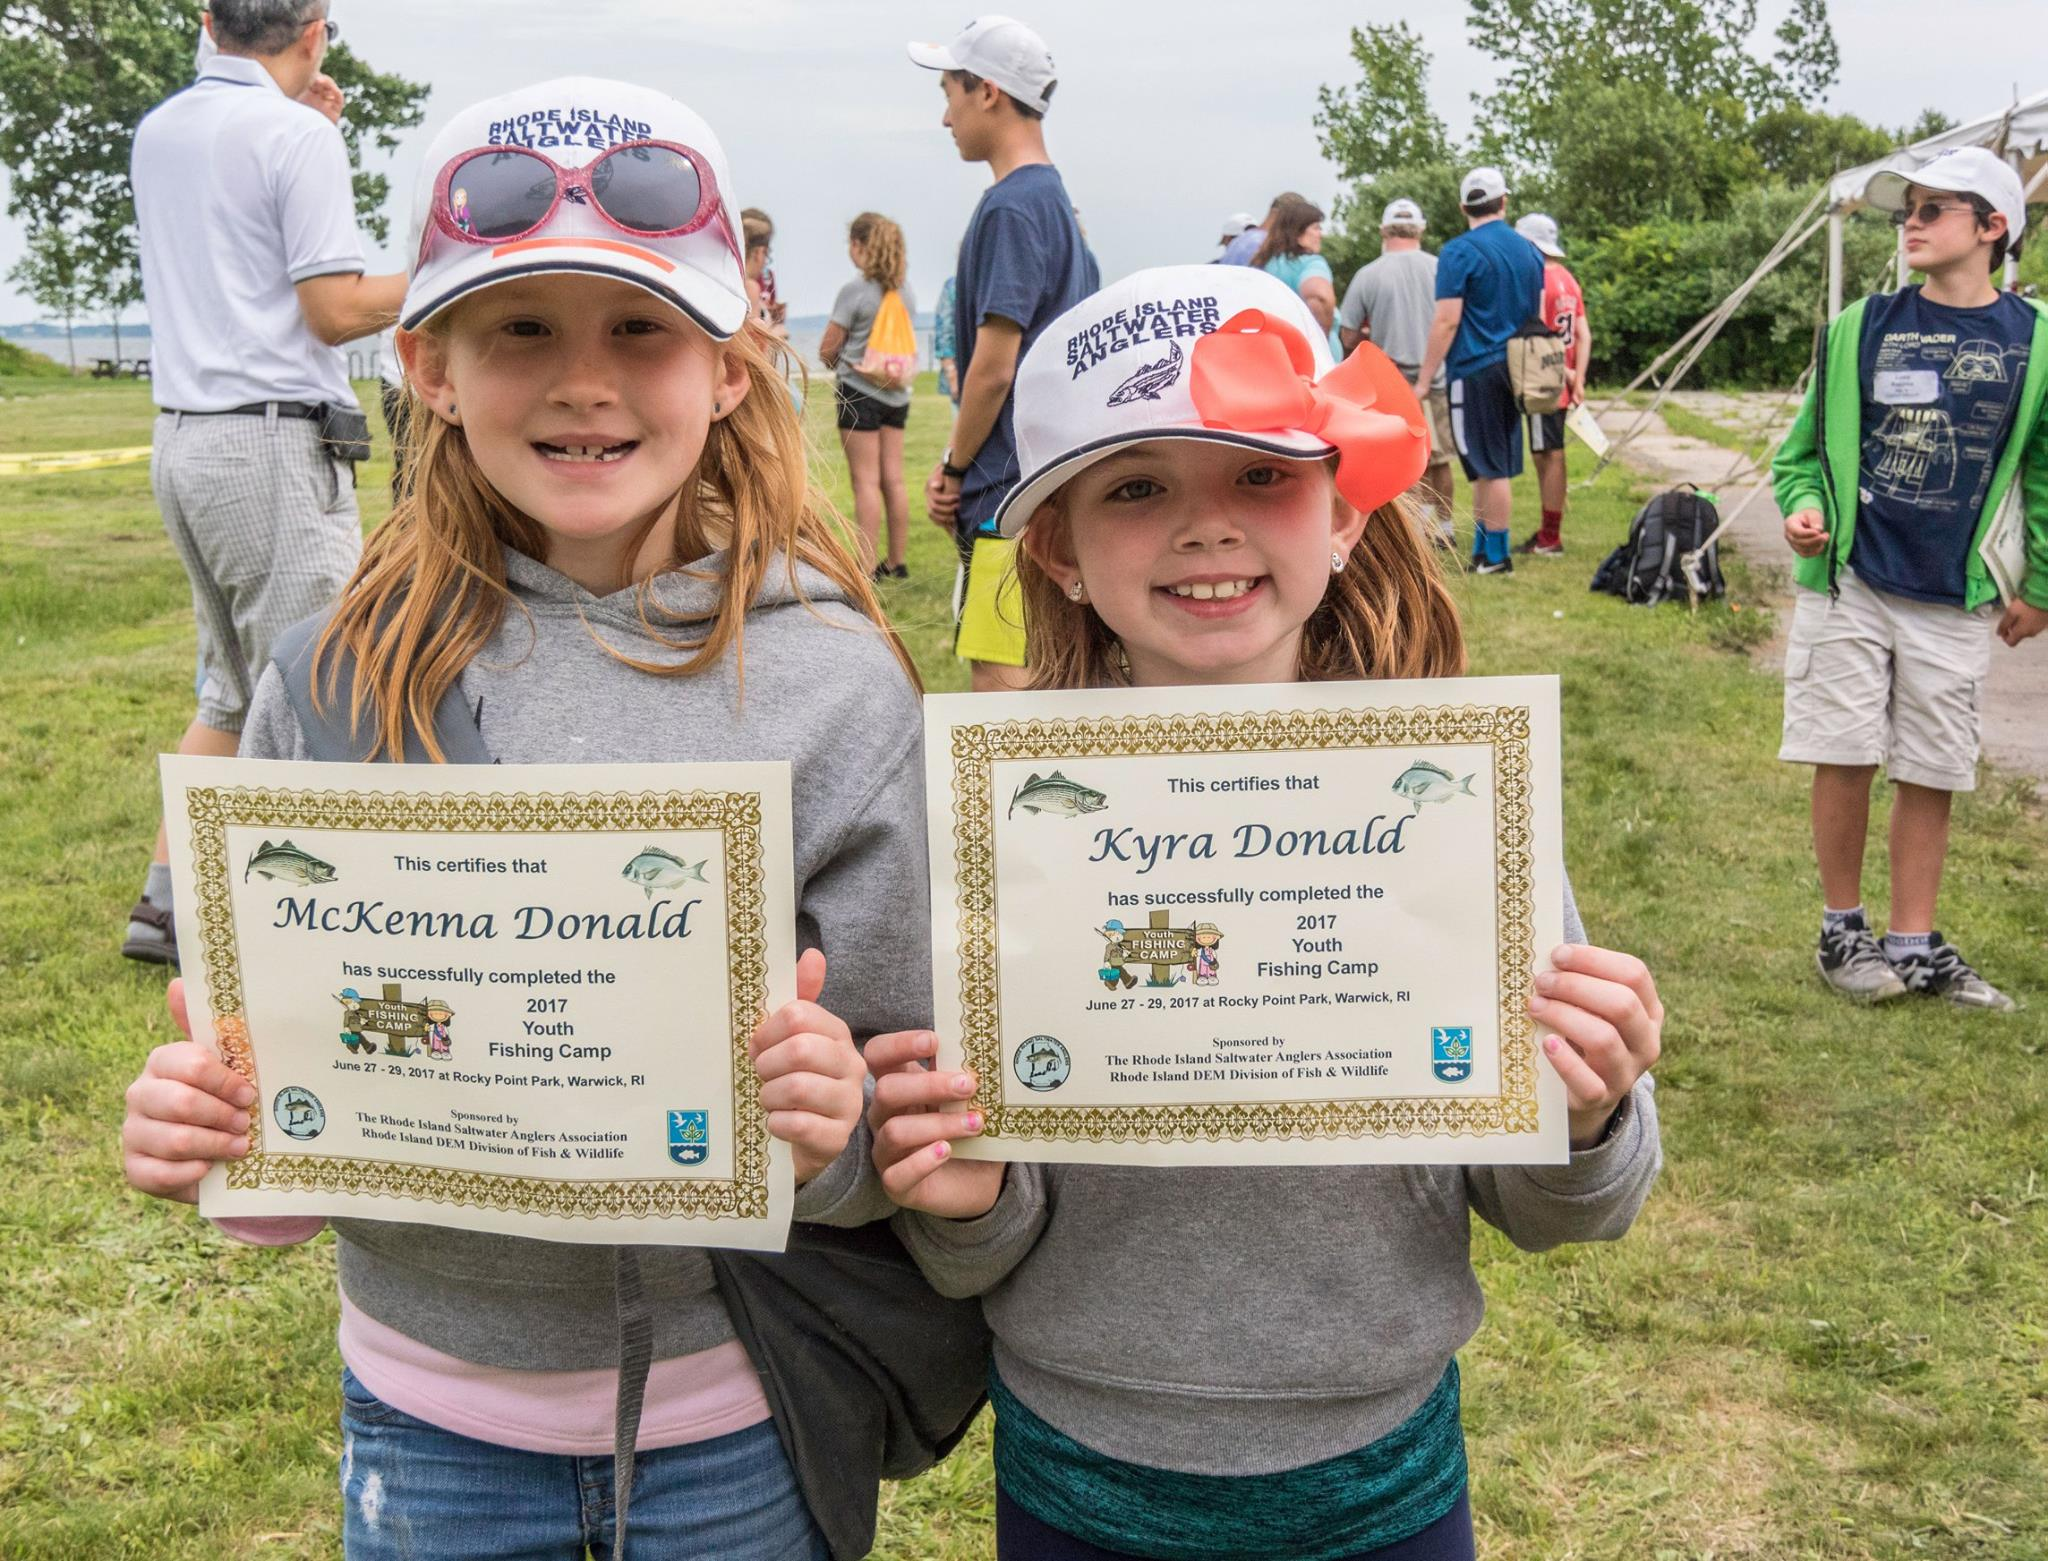 The Donald sisters (McKenna and Kyra) proudly display their RISAA Fishing Camp graduation certificates.